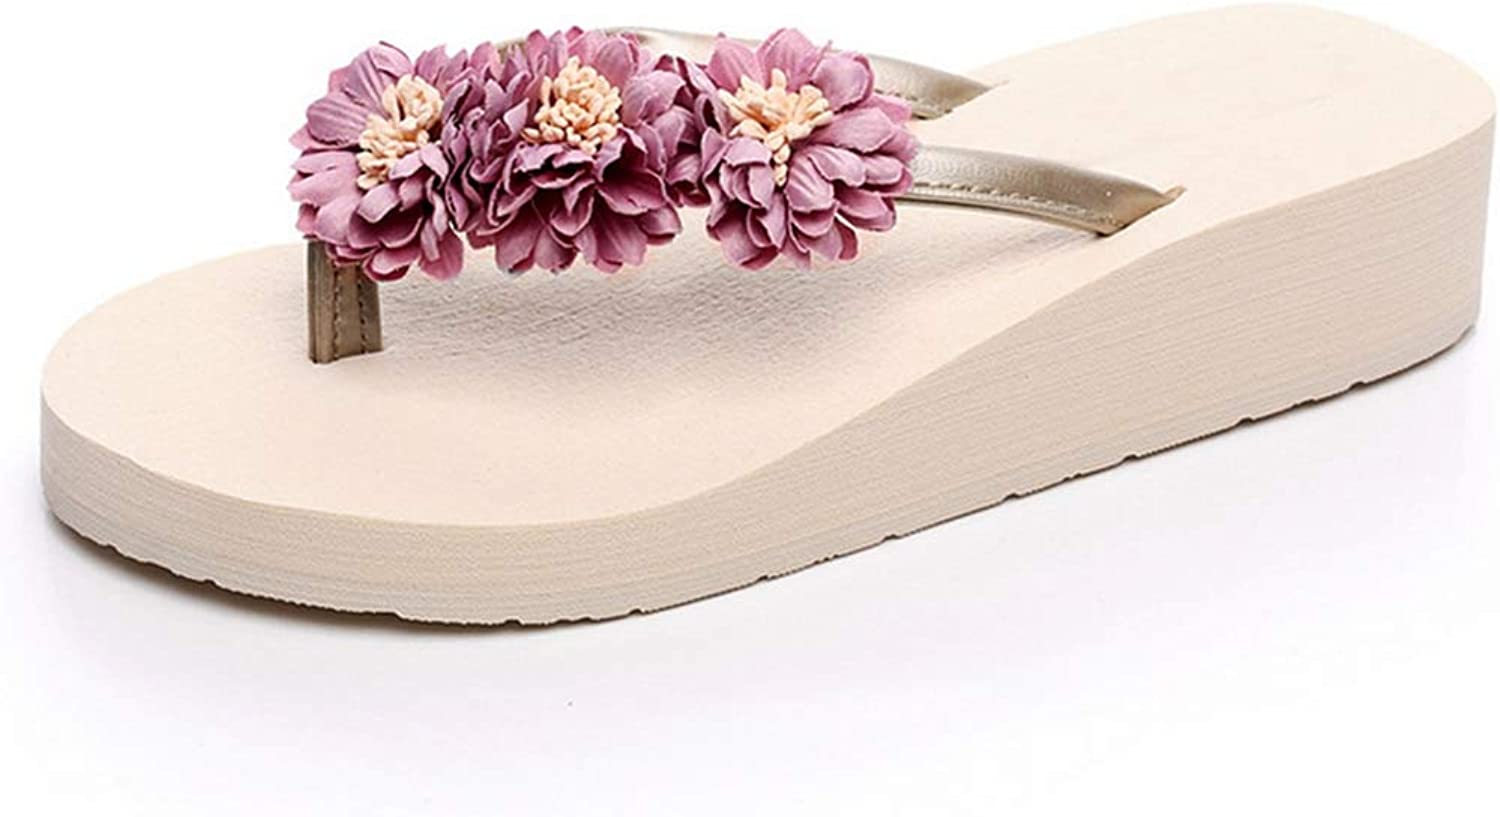 Women's Beach Wedge Flip Flops Platform Small Daisy Flower Decorations Waterproof Soft Casual Fashion Toe Post Clip Toes Sandals Slippers